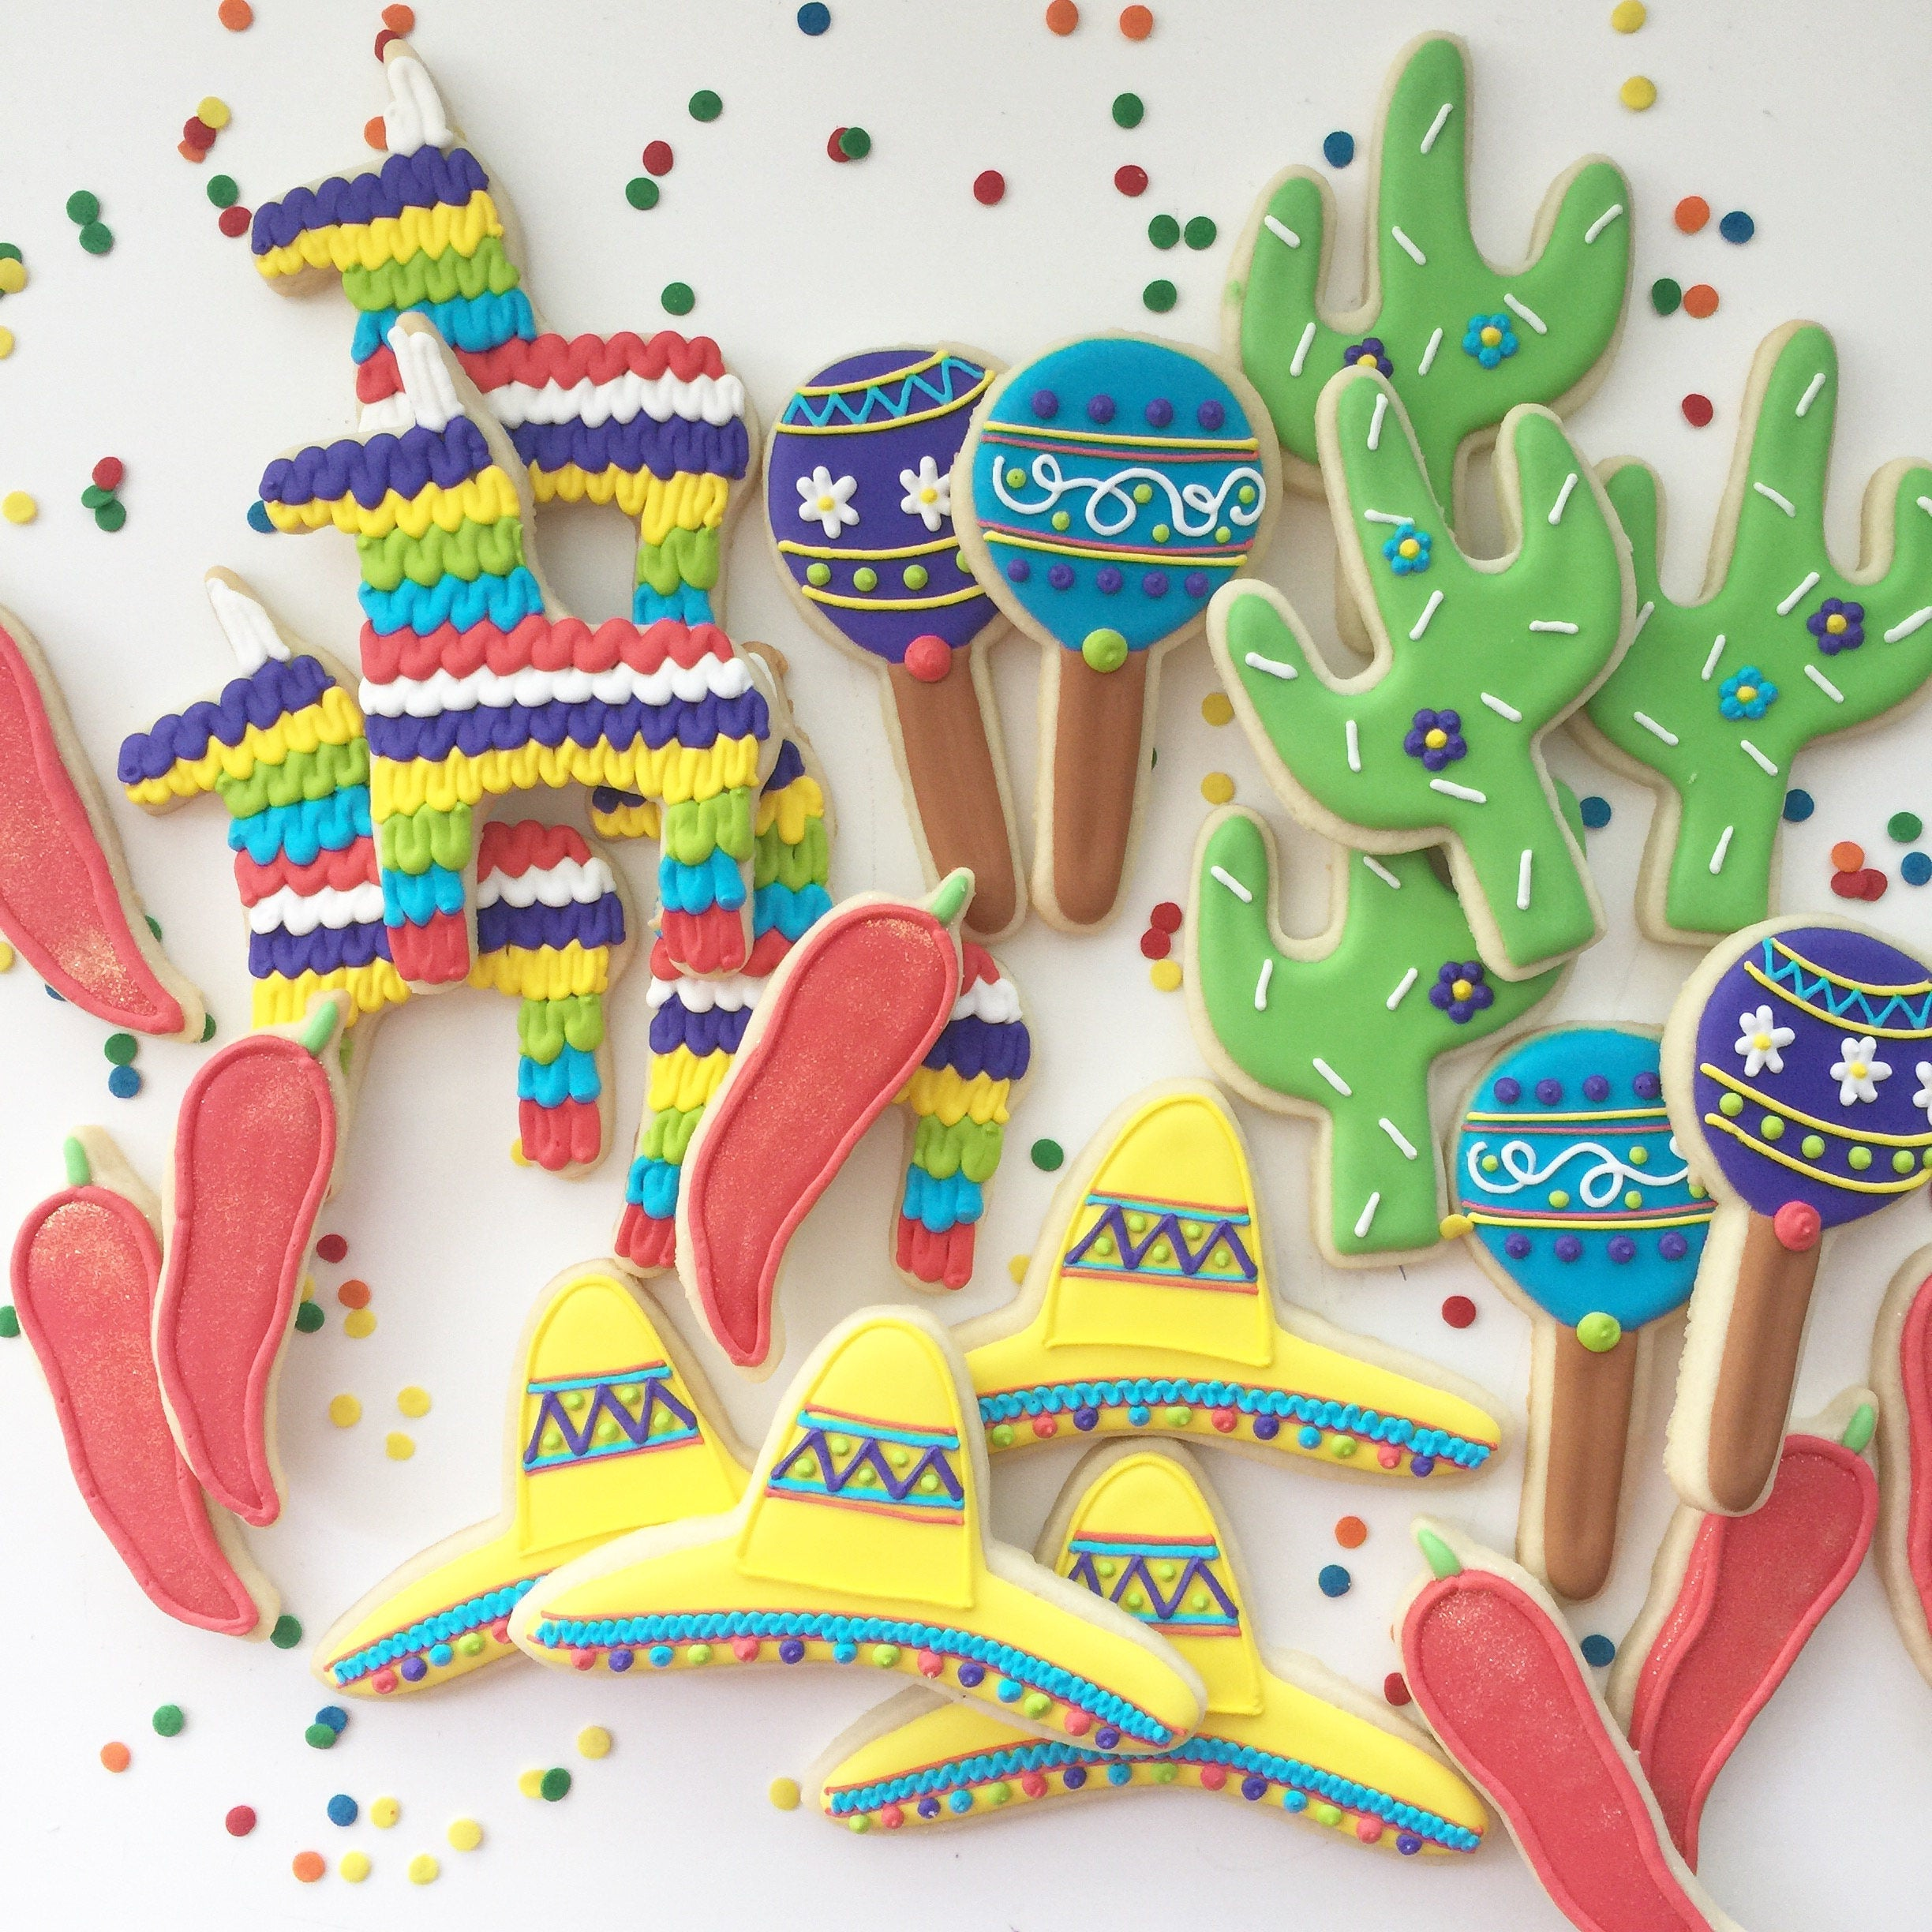 Fiesta Cookies - Fiesta Bridal Shower Decorations - Dessert Table Cookies - Fiesta Party Decor